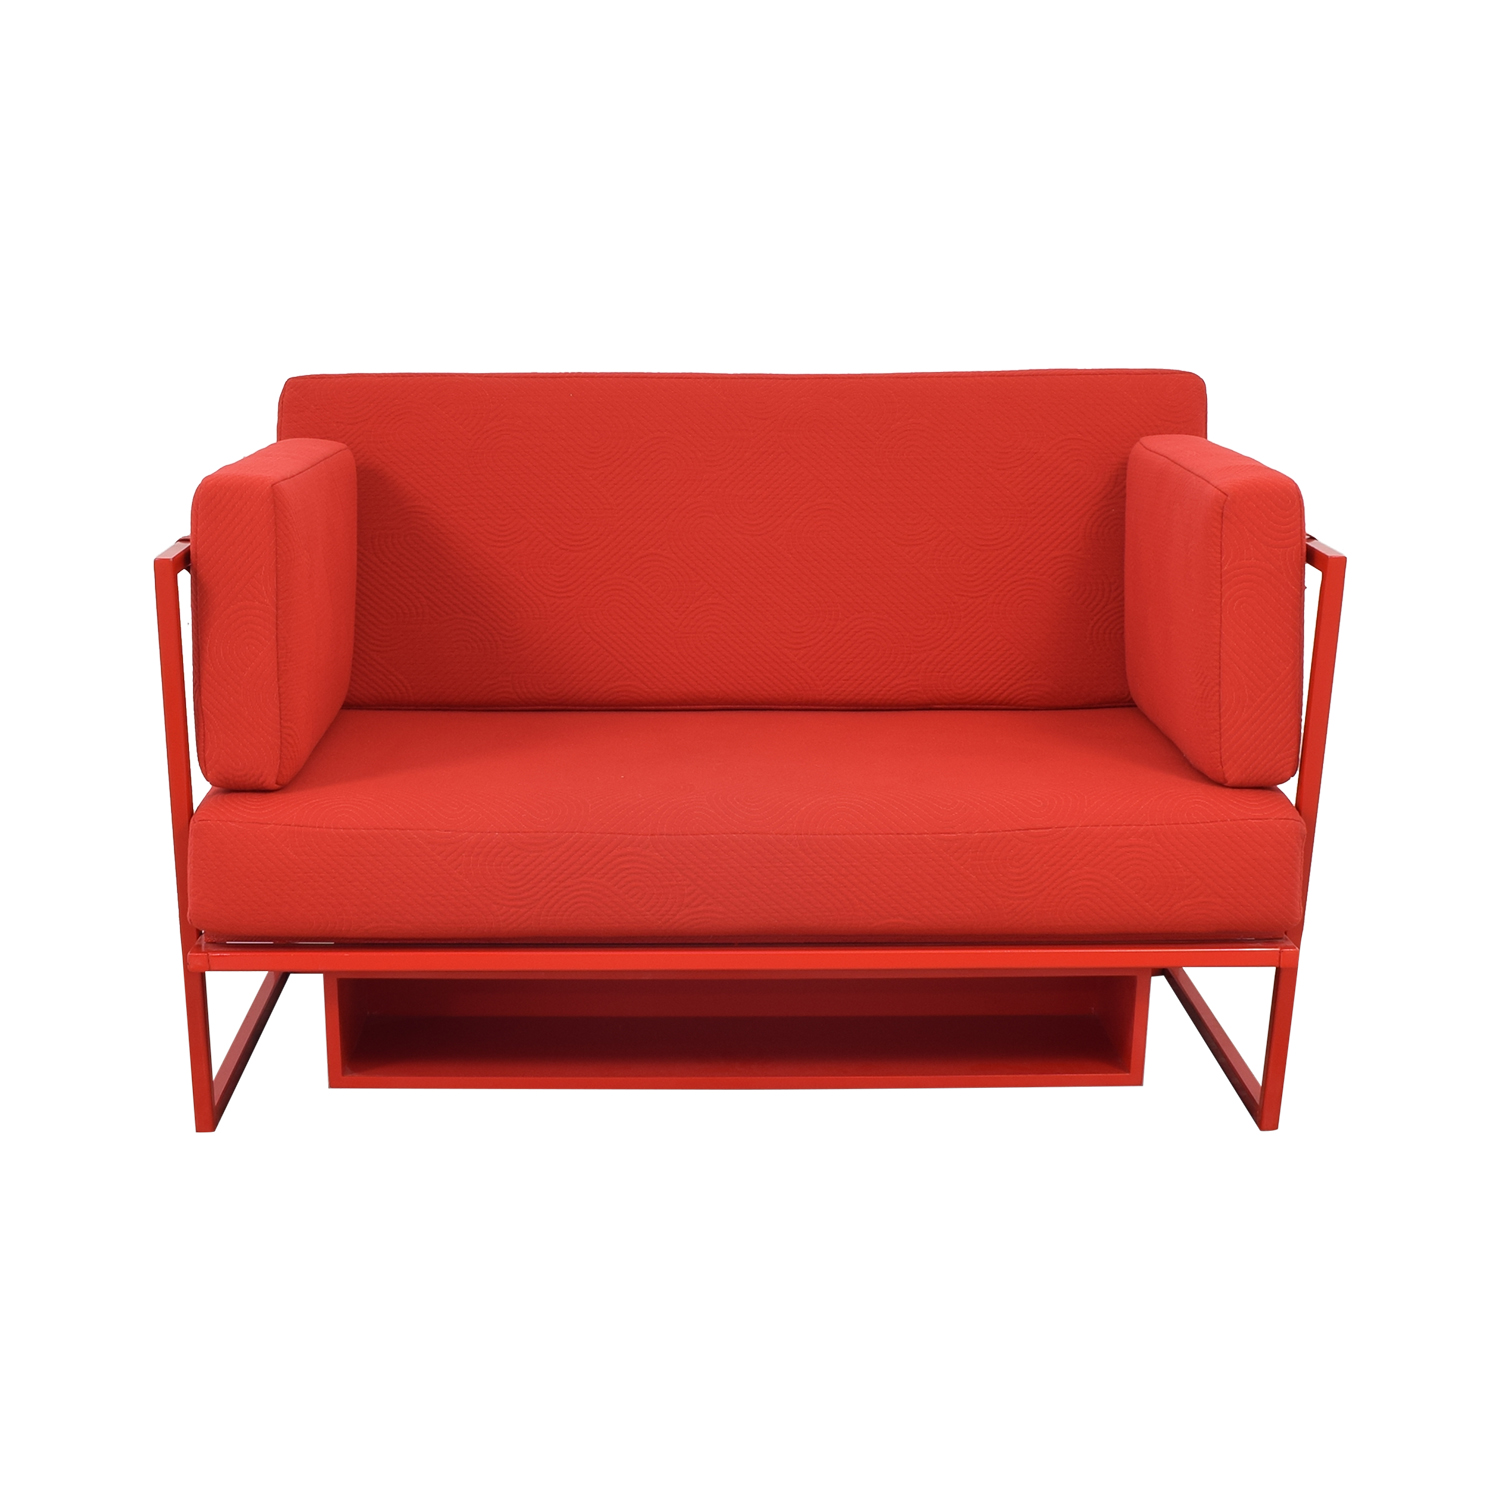 75% OFF - Collector NYC Collector NYC Custom Red Sofa / Sofas